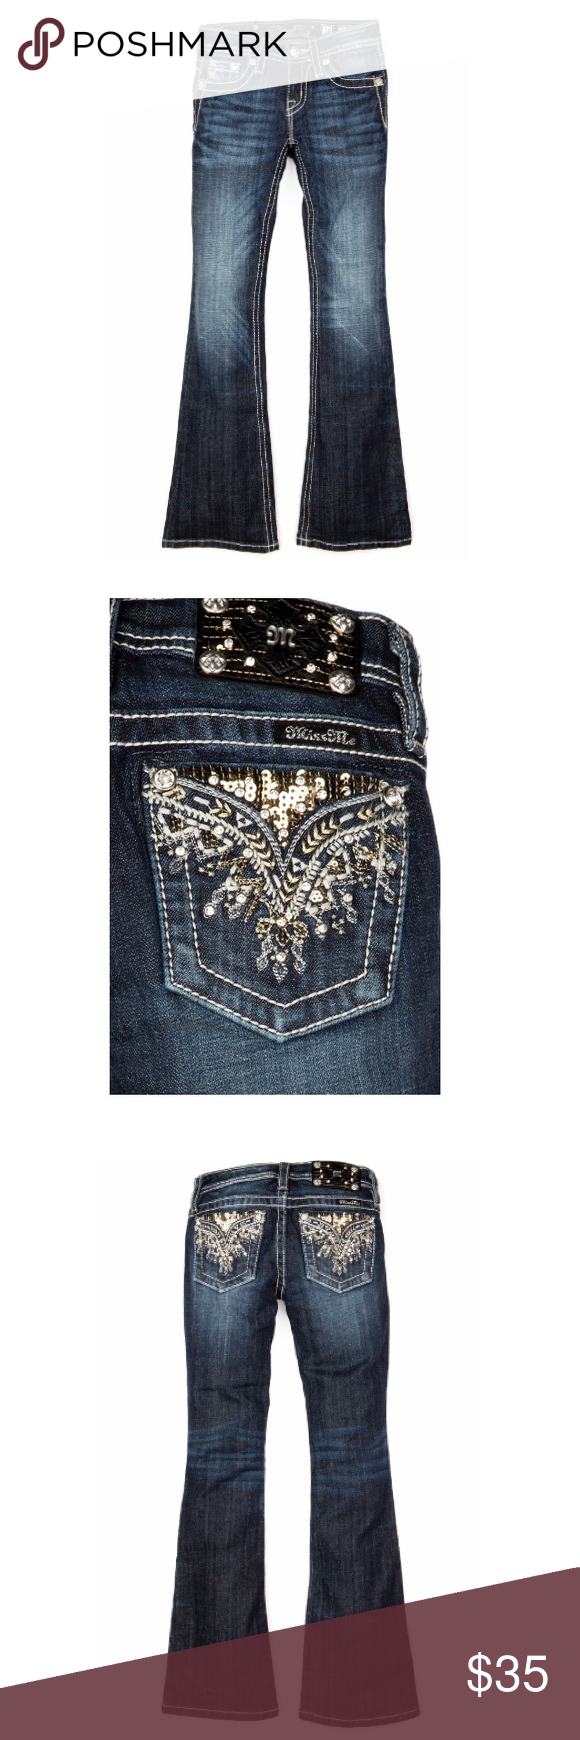 """NEW MISS ME • GIRLS HOUR BOOT CUT JEANS OBO 98% Cotton; 2% Elastane Machine Wash Separately In Cold Water Front Rise: 6 ¾"""" ; Back Rise: 11 ¾"""" Inseam: 28 ¾"""". • boot cut jeans styled with an embroidered design with sequins and crystal rivets! Jean is also detailed with fading, whiskering, logo hardware, and contrast stitching. NEW. Girls size not women's Miss Me Jeans Boot Cut"""